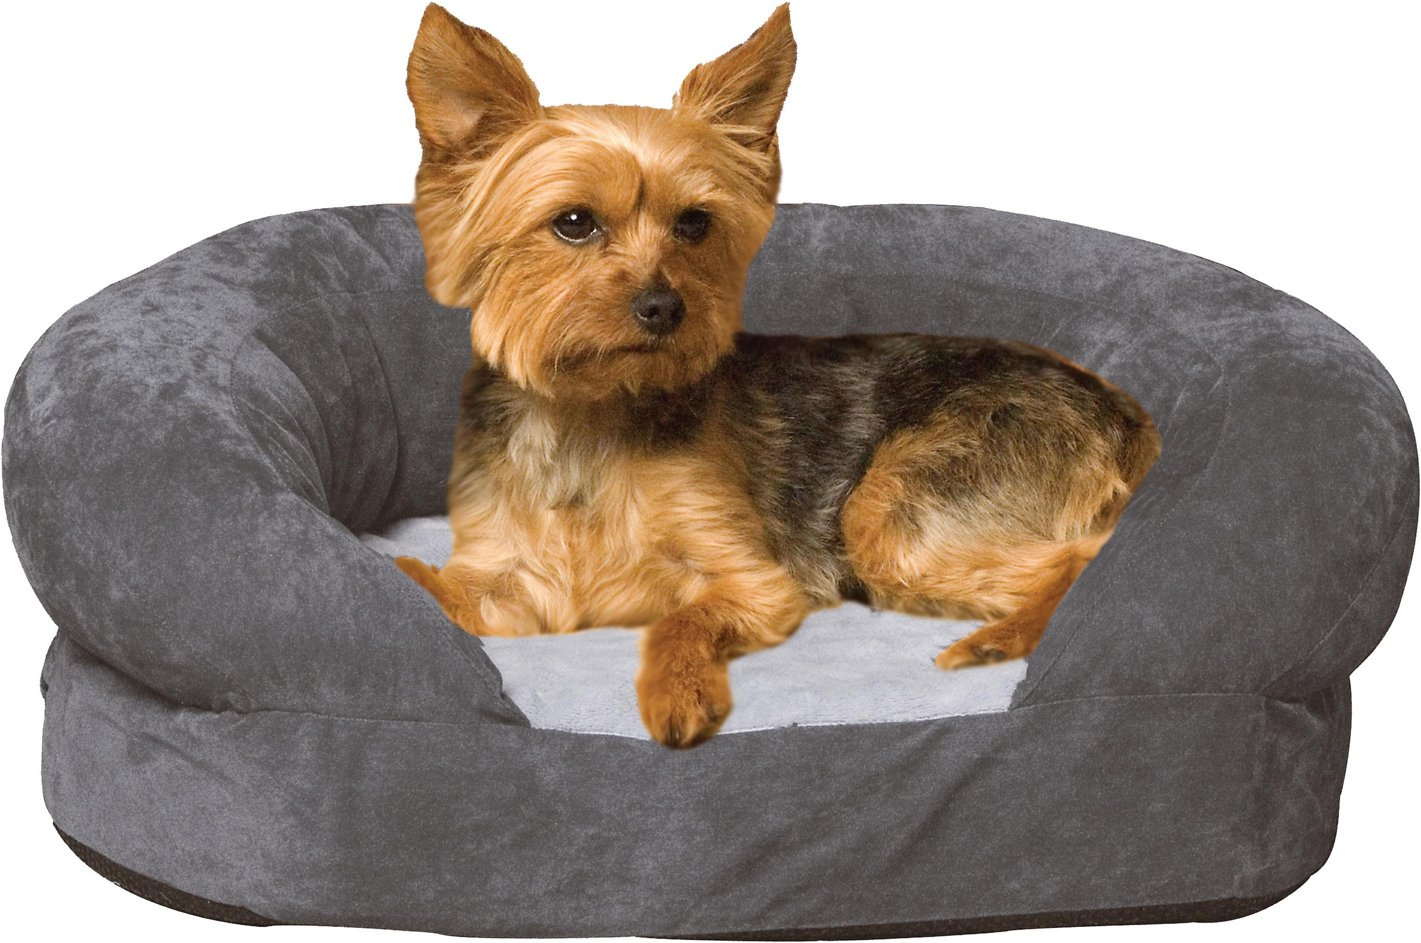 Pleasing Kh Pet Products Ortho Bolster Sleeper Pet Bed Gray Small Evergreenethics Interior Chair Design Evergreenethicsorg